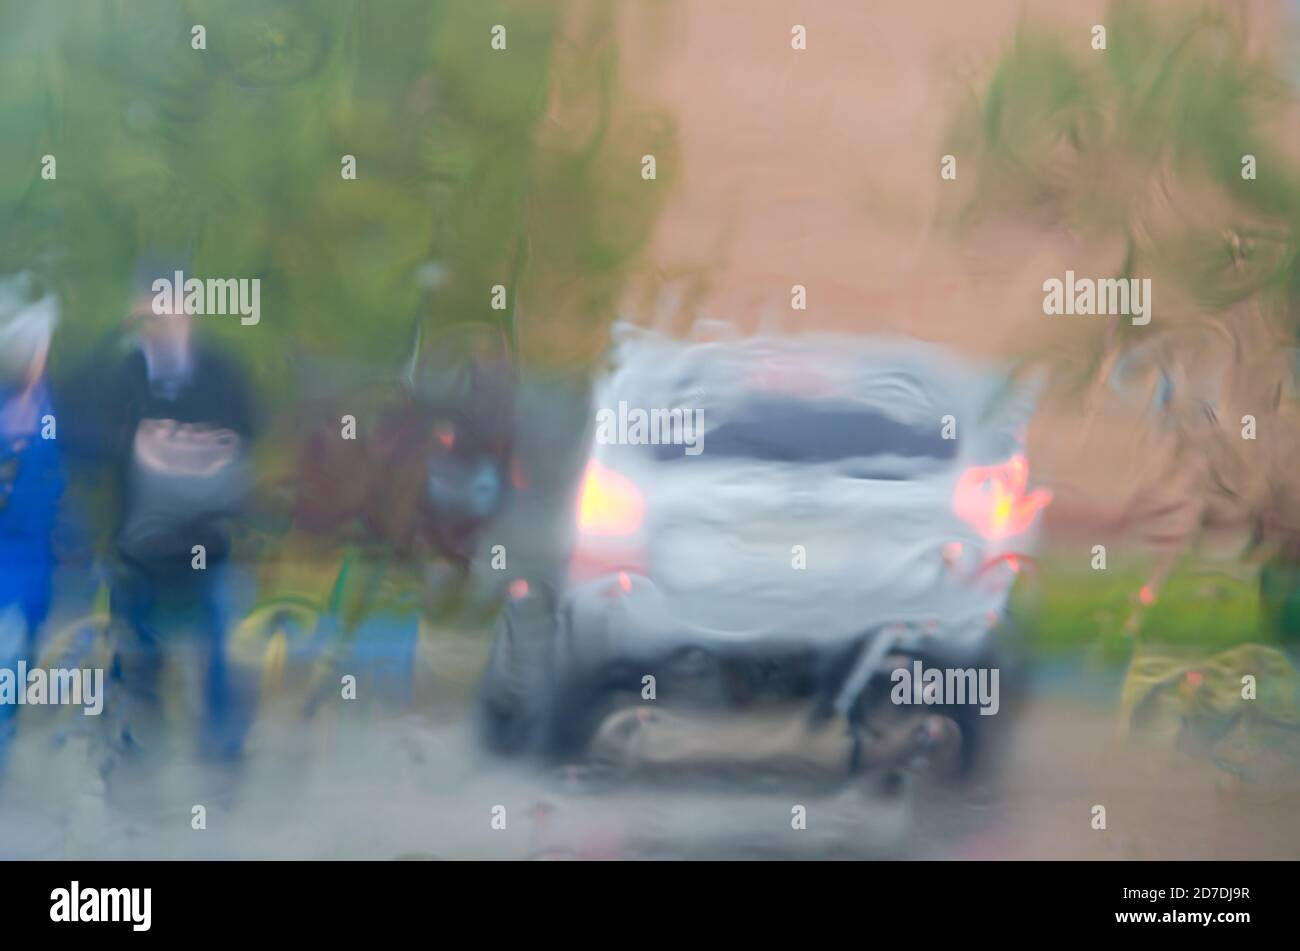 adverse weather conditions high resolution stock photography and images alamy https www alamy com adverse driving conditionsheavy rainview through car windshield image383230451 html